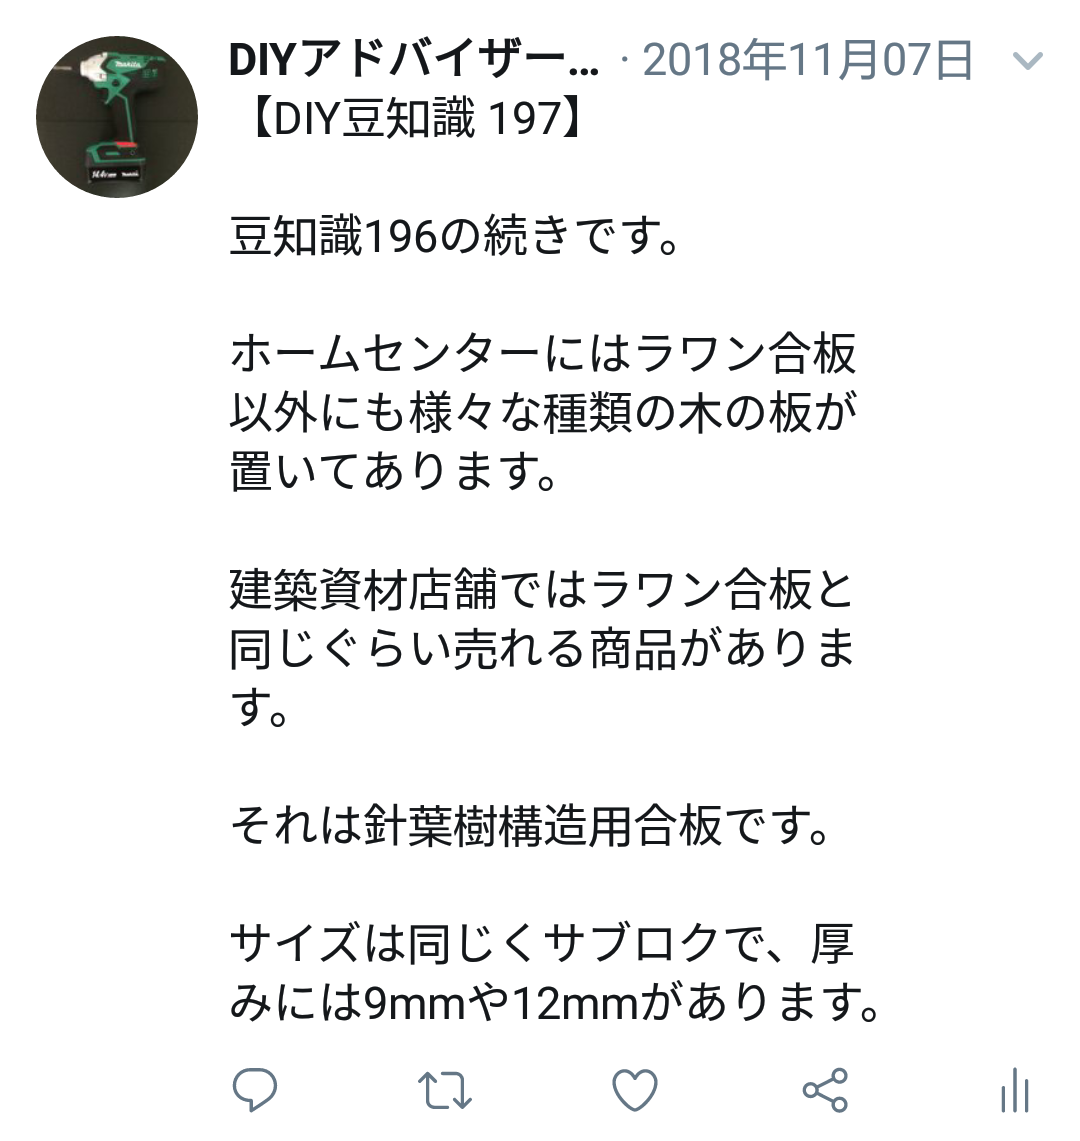 f:id:DIY33:20190407230530p:plain